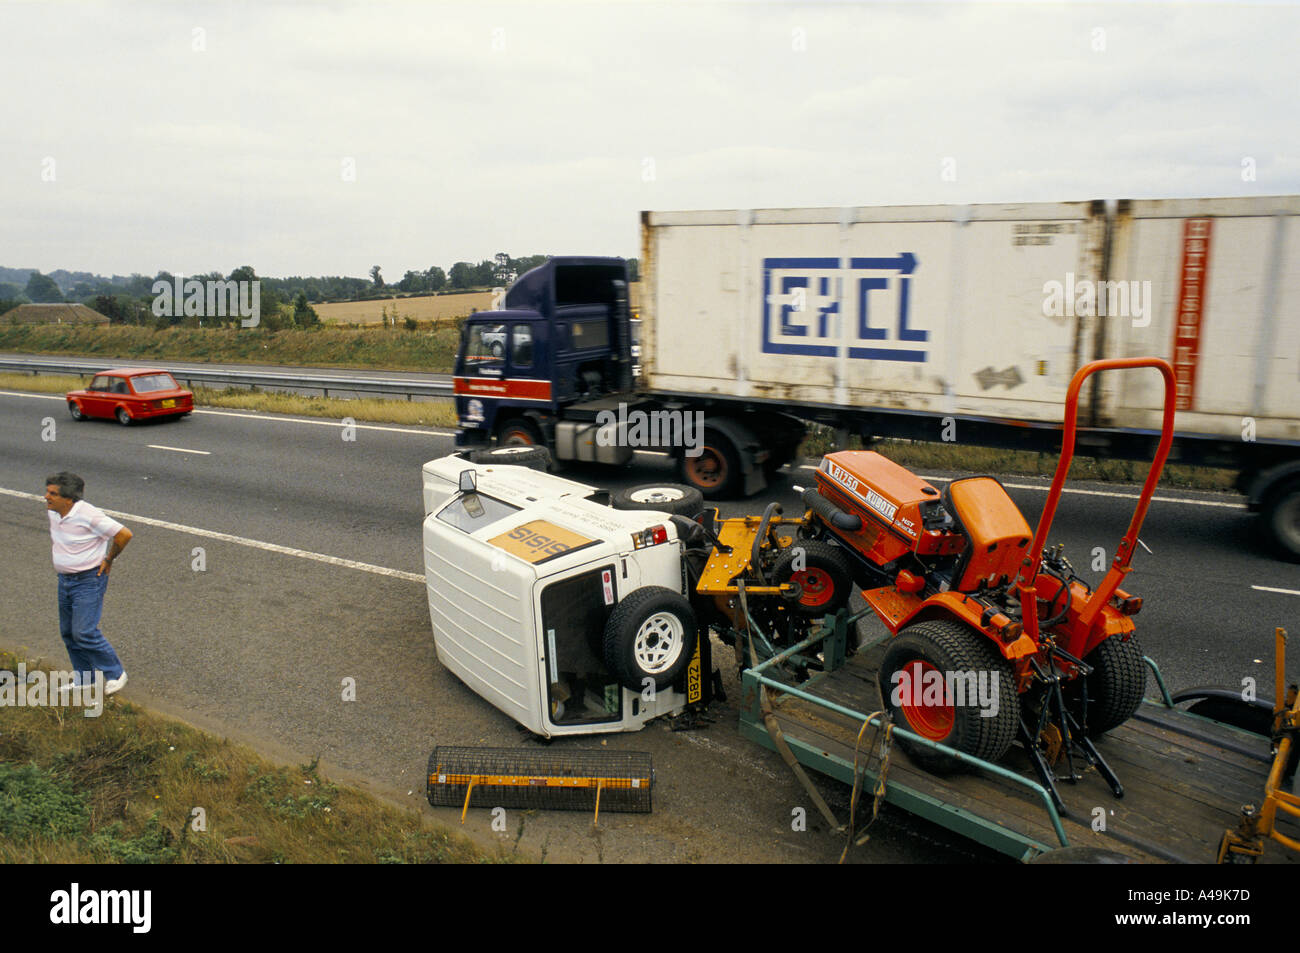 Garden Tractor Pulling Crashes : Scene of m motorway crash involving jeep turned over on